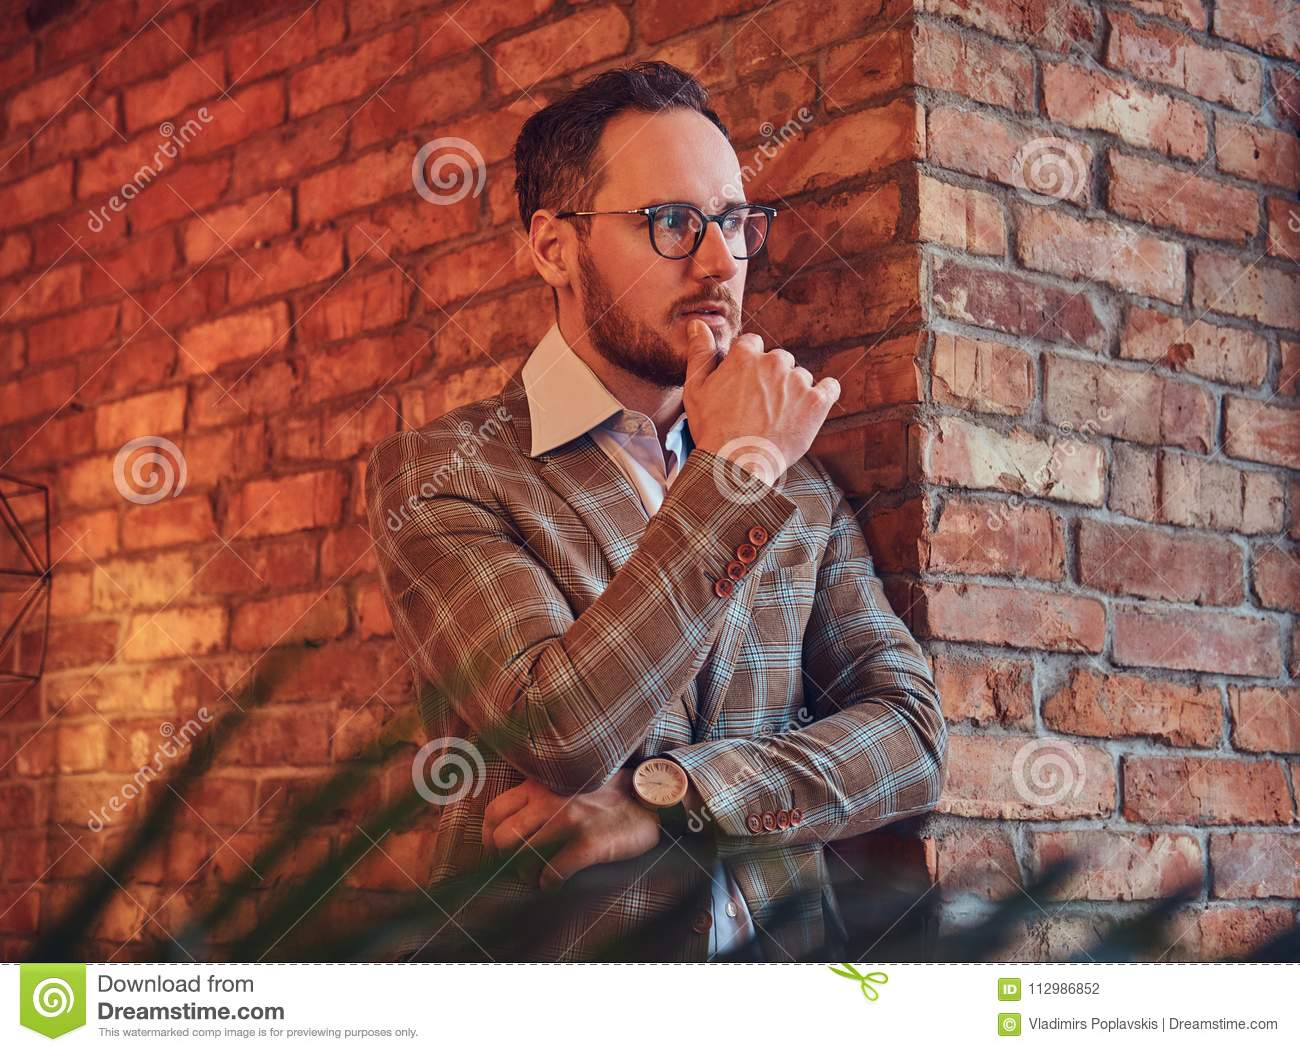 Portrait of a stylish man in a flannel suit and glasses leaning against a brick wall in a room with loft interior.